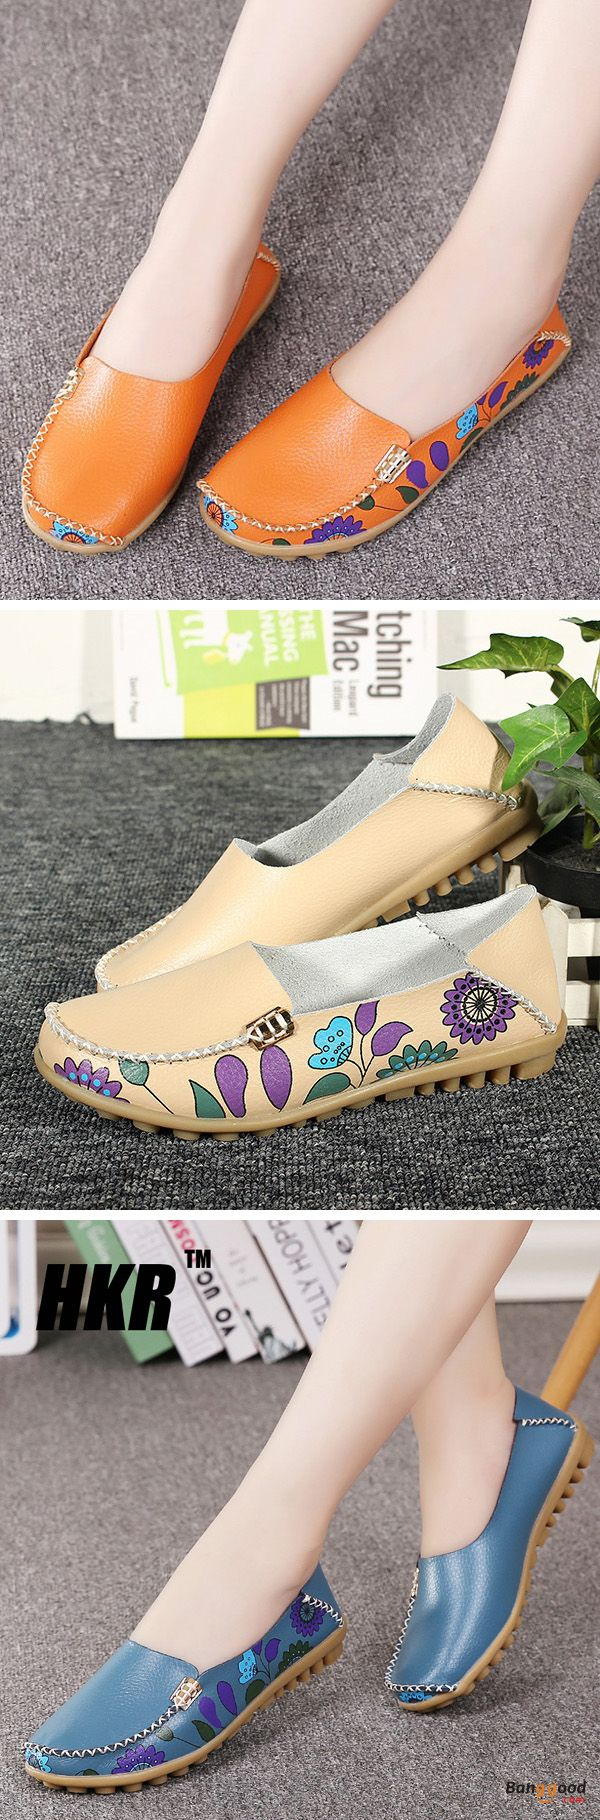 US$20.99 + Free shipping. Size(US): 5~10. Color: Black, Purplish Red, Rose Red, Beige, Light Blue, Royal Blue, Orange, Khaki. Upper Material: Cow Split Leather. Fall in love with casual style! SOCOFY US Size 5-10 Women Flat Flower Casual Outdoor Soft Slip On Leather Loafer Shoes.